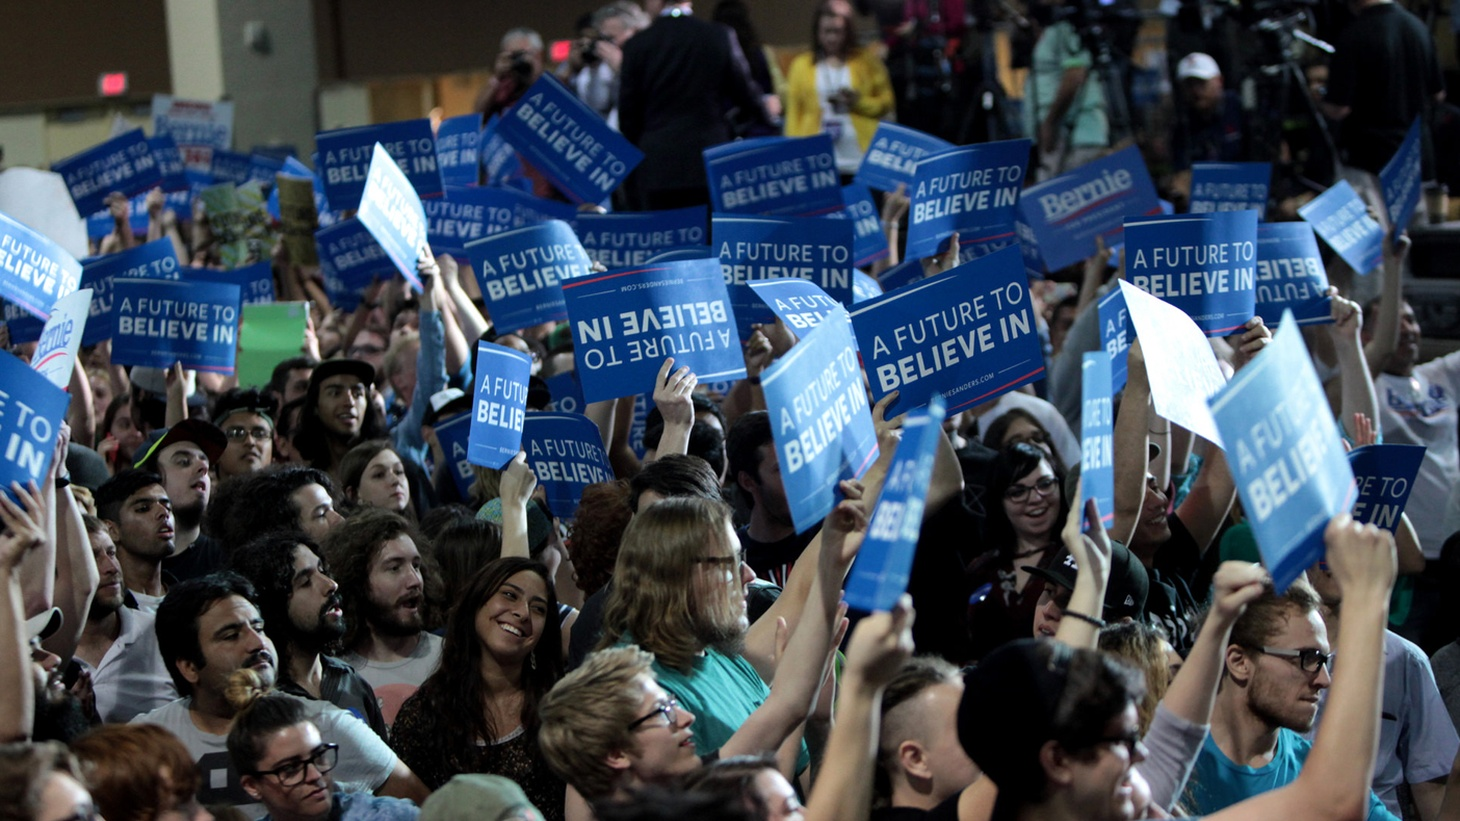 Donald Trump and Bernie Sanders are outraged along with their supporters about Republican and Democratic Party rules for the presidential nominating process, but it was never intended to be an exercise in direct democracy.